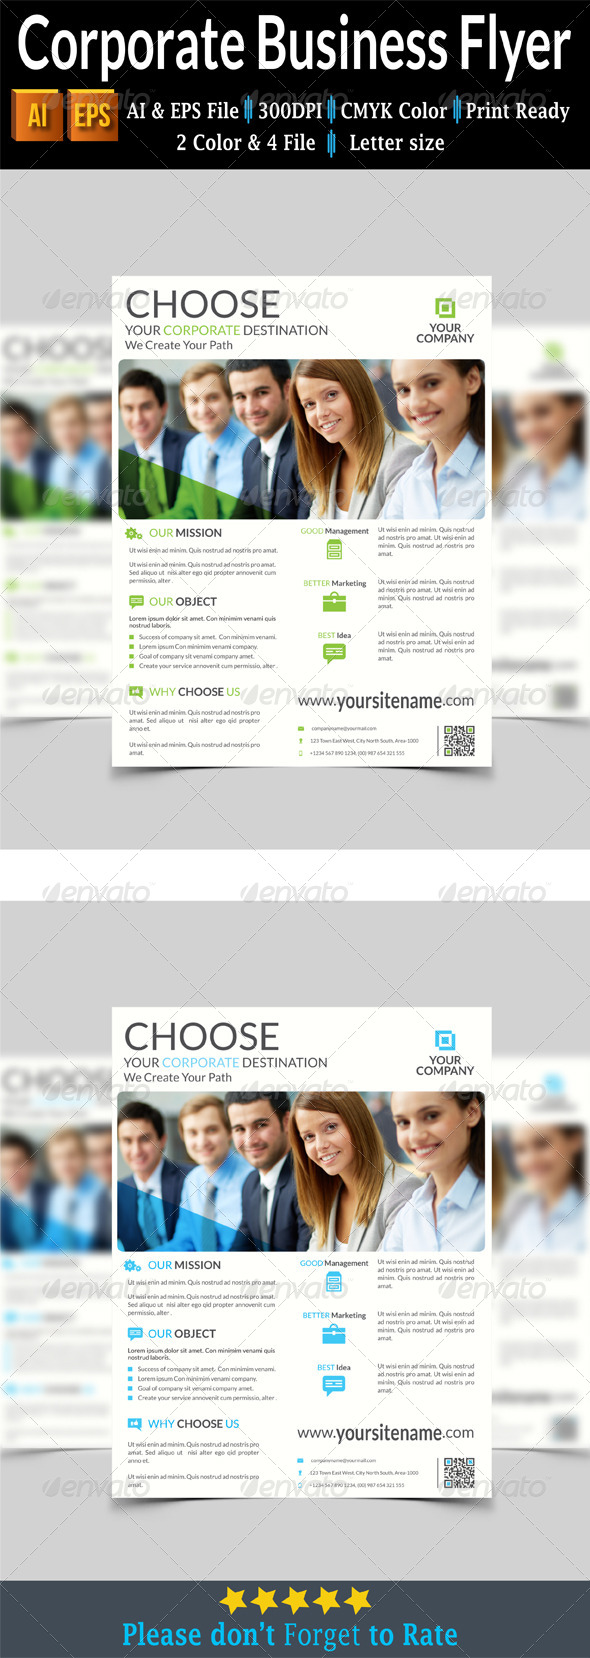 GraphicRiver Corporate Business Flyer 7893575